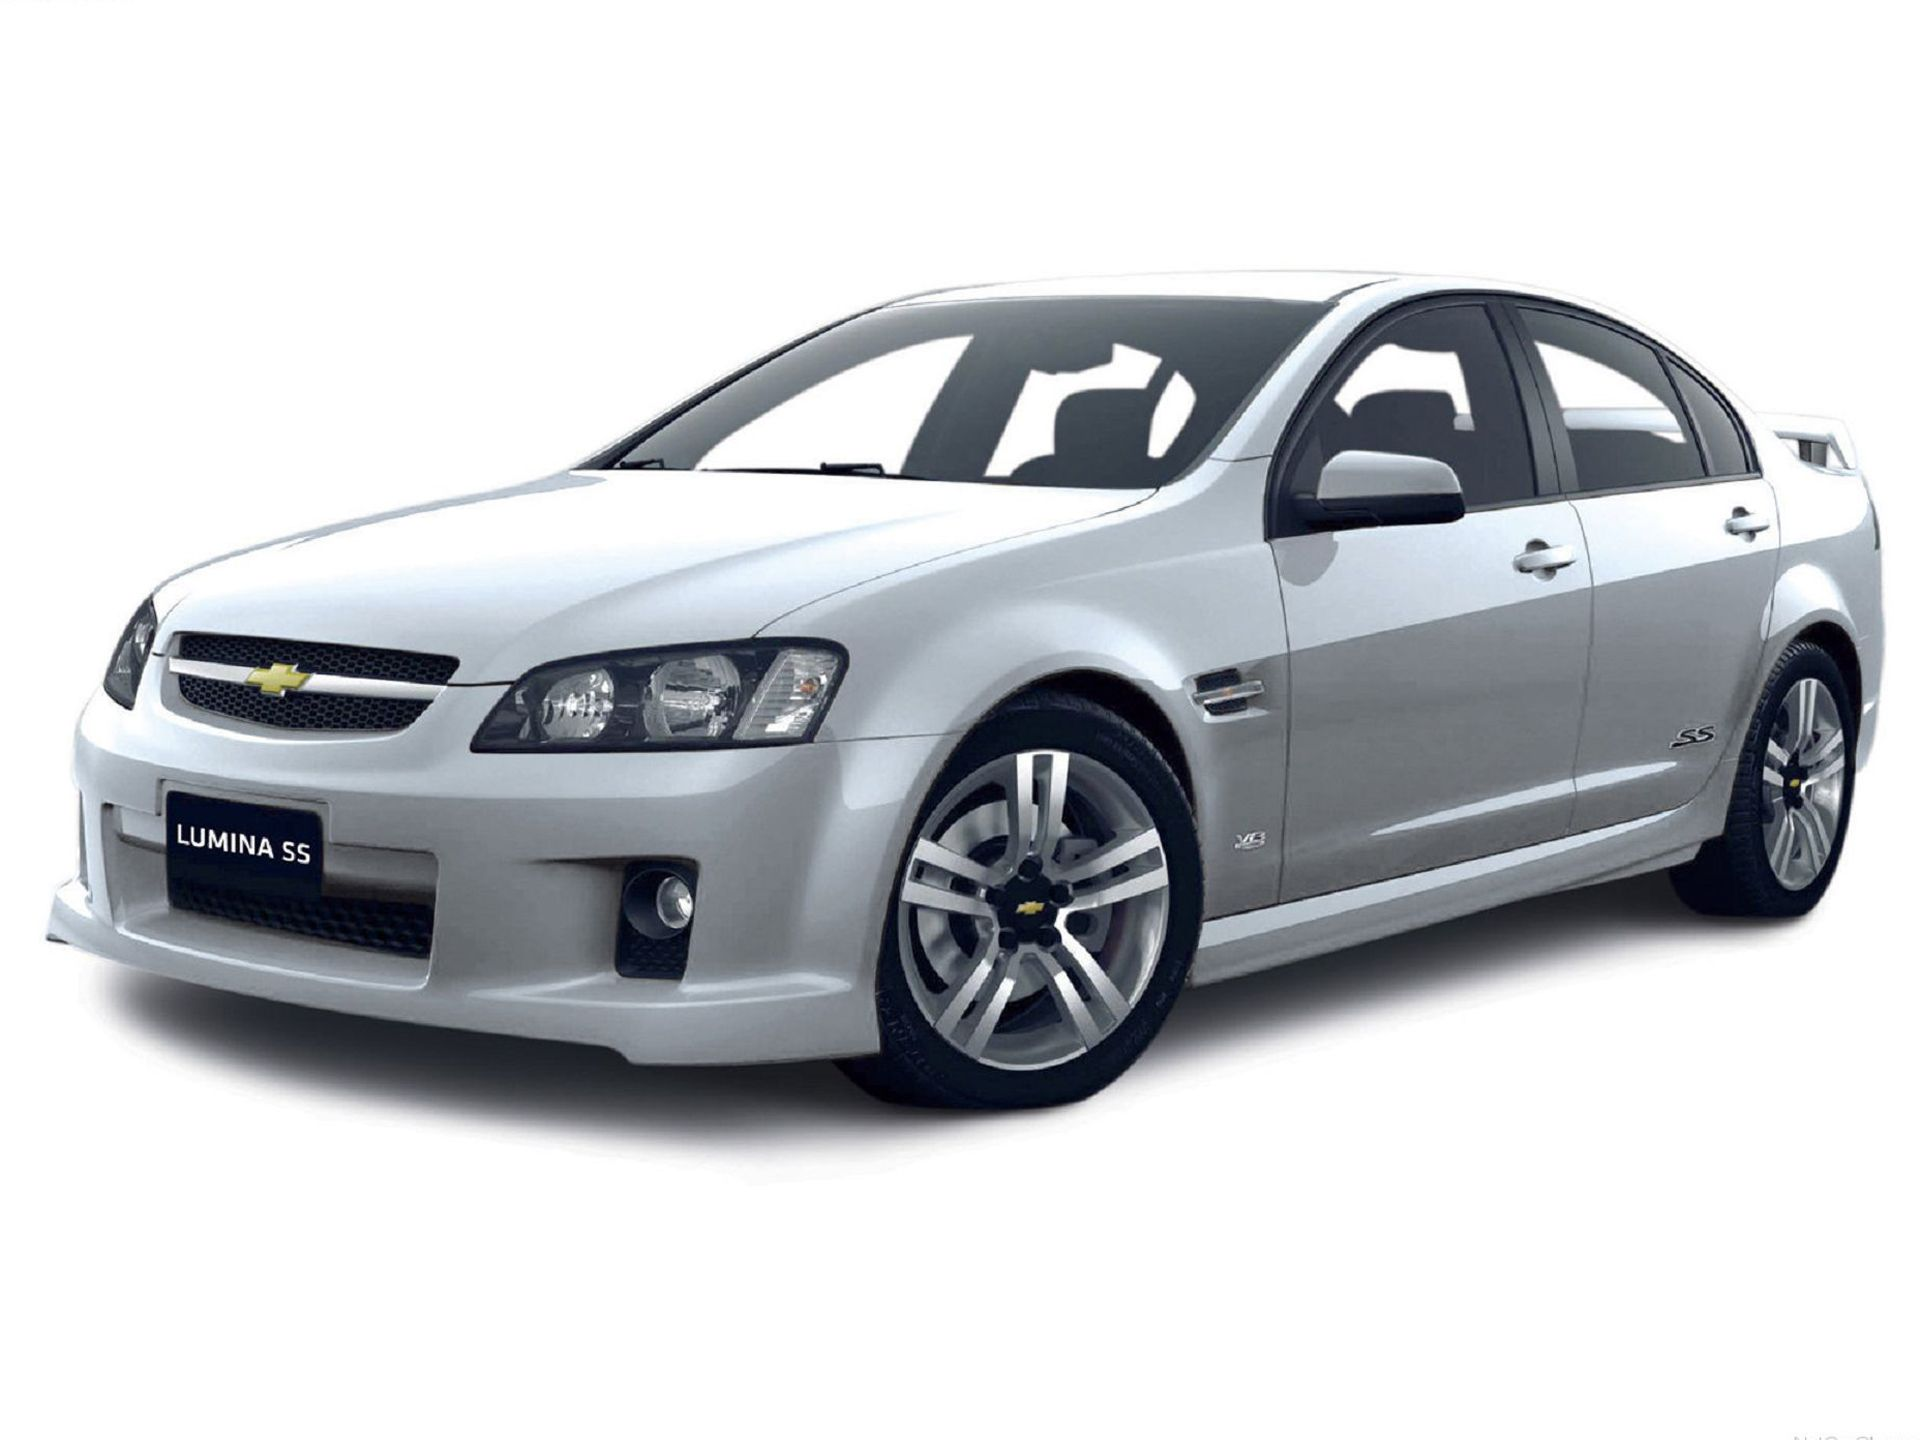 Chevrolet Lumina 2008 Review Amazing Pictures And Images